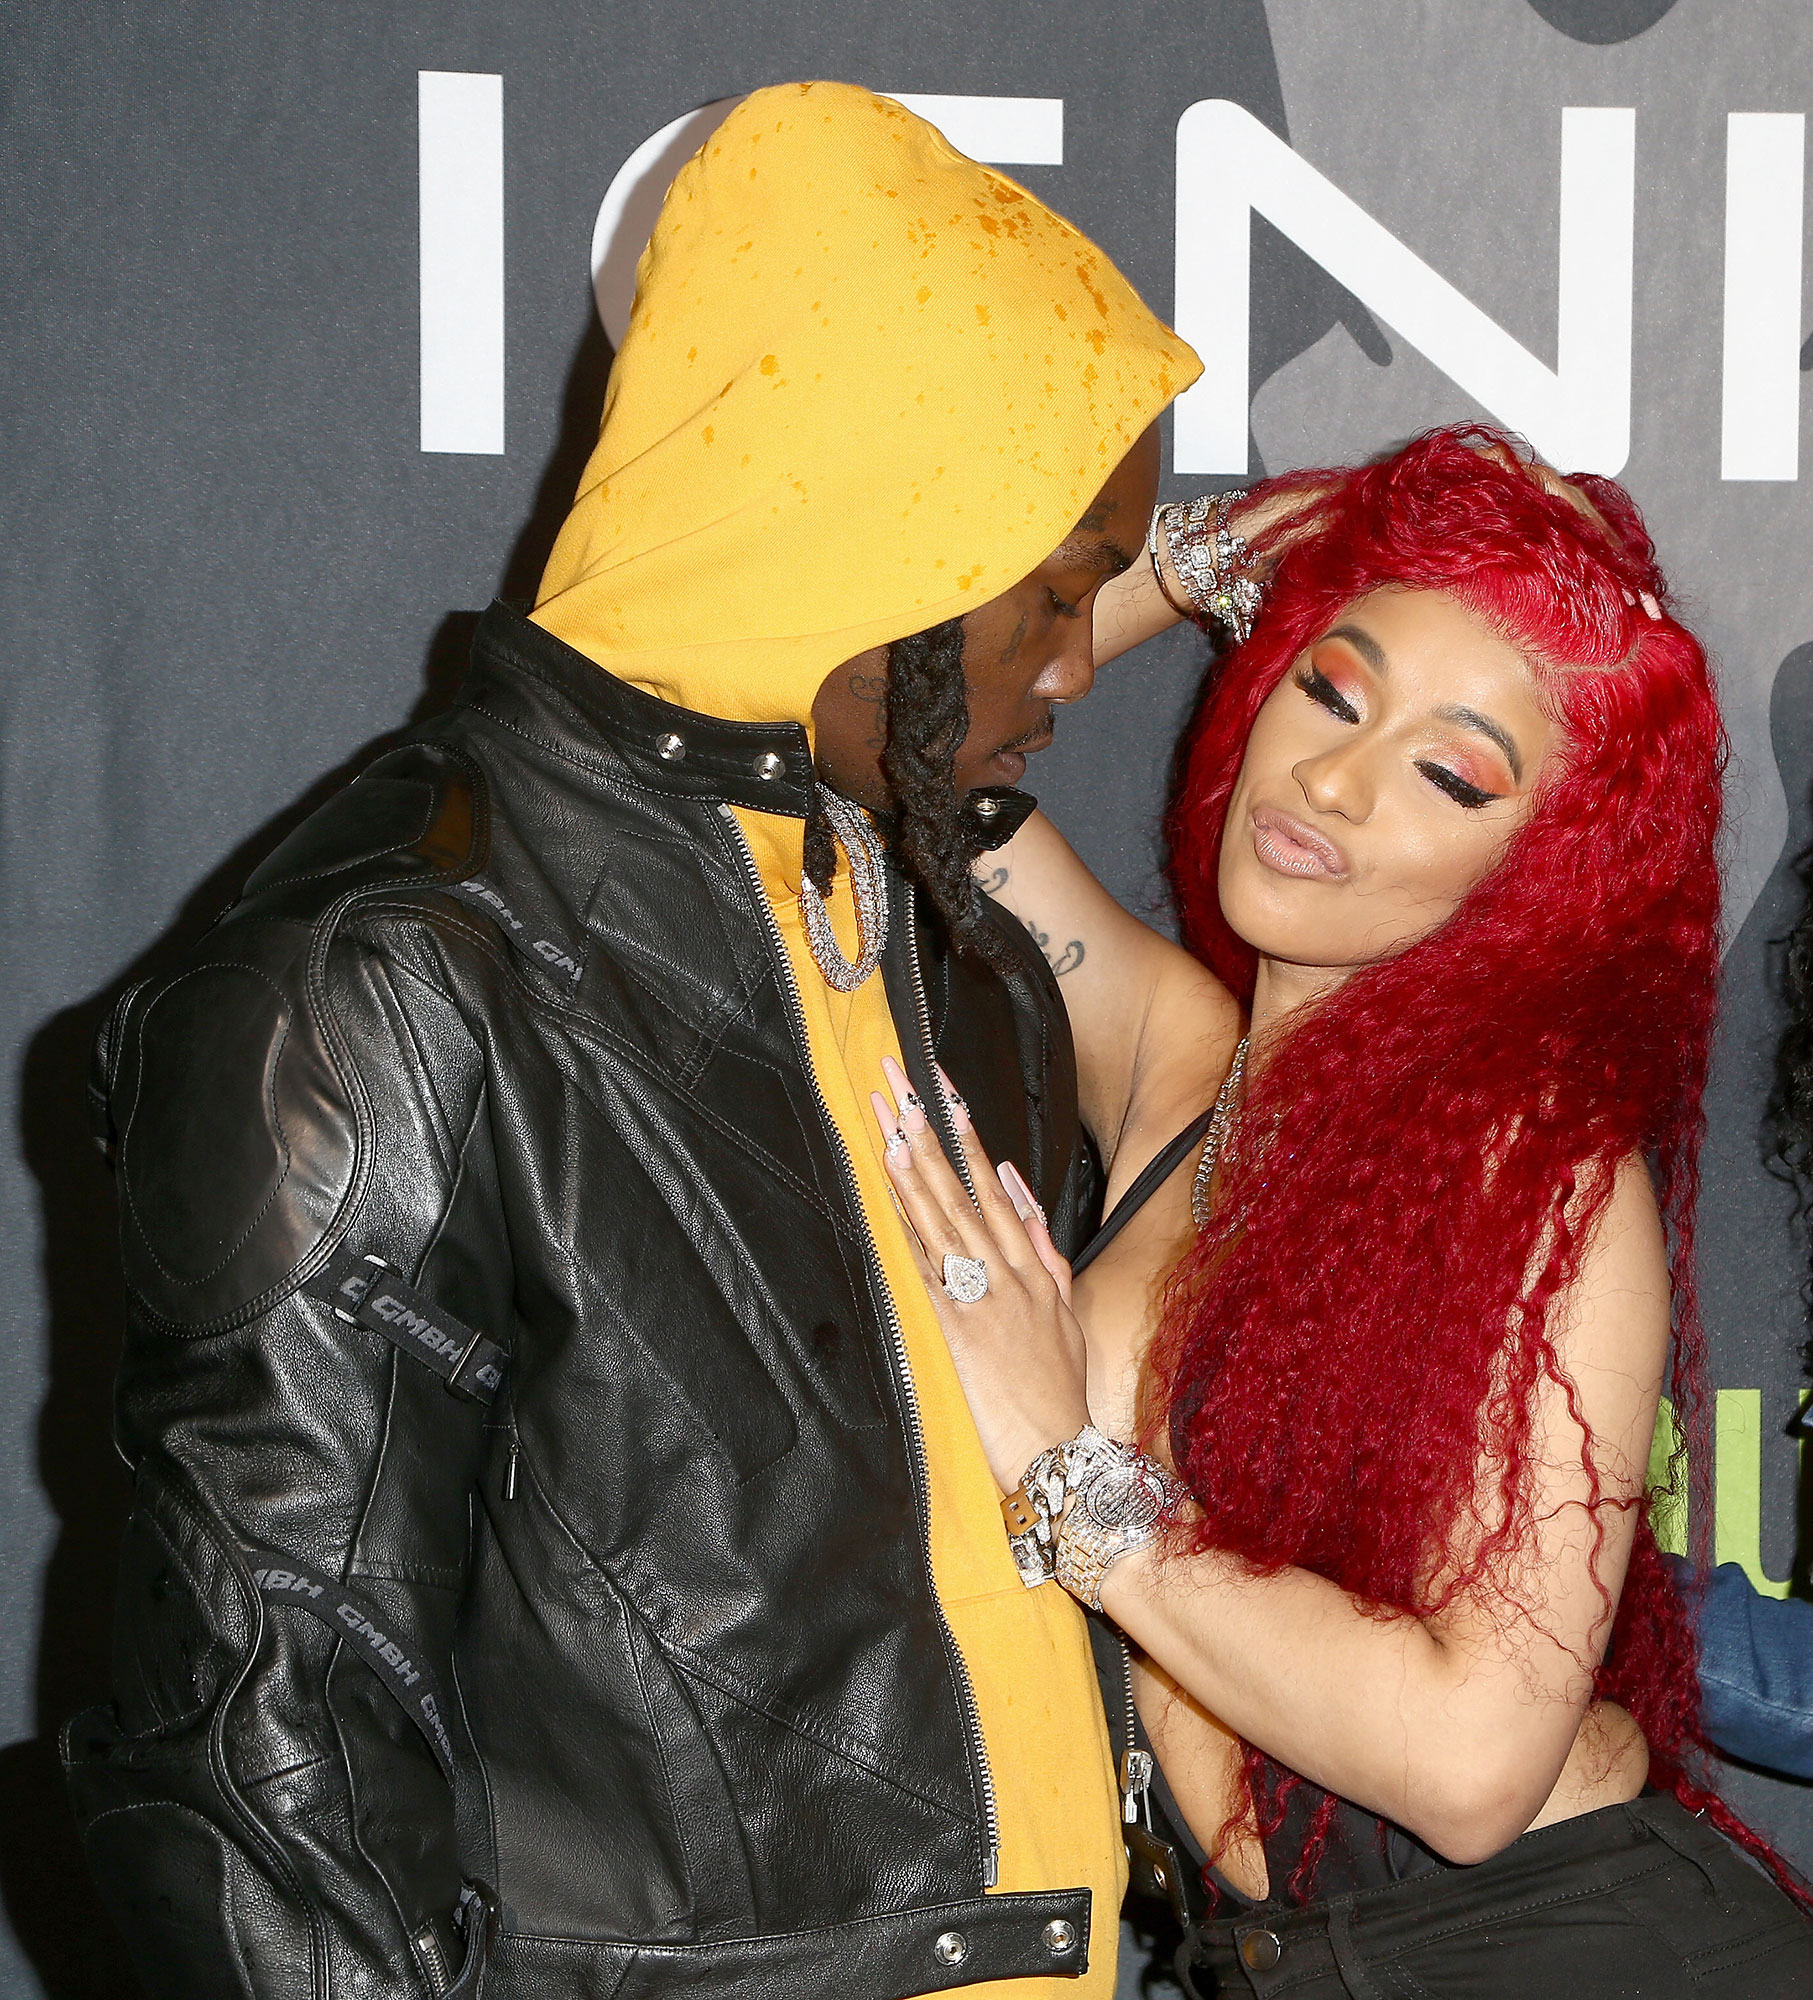 Cardi B Puts Wedding Ring Back on Following Brief Split from Husband Offset - Offset and Cardi B attend Ignite Angels and Devils Pre-Valentine's Day Party on February 13, 2019 in Bel Air, California.